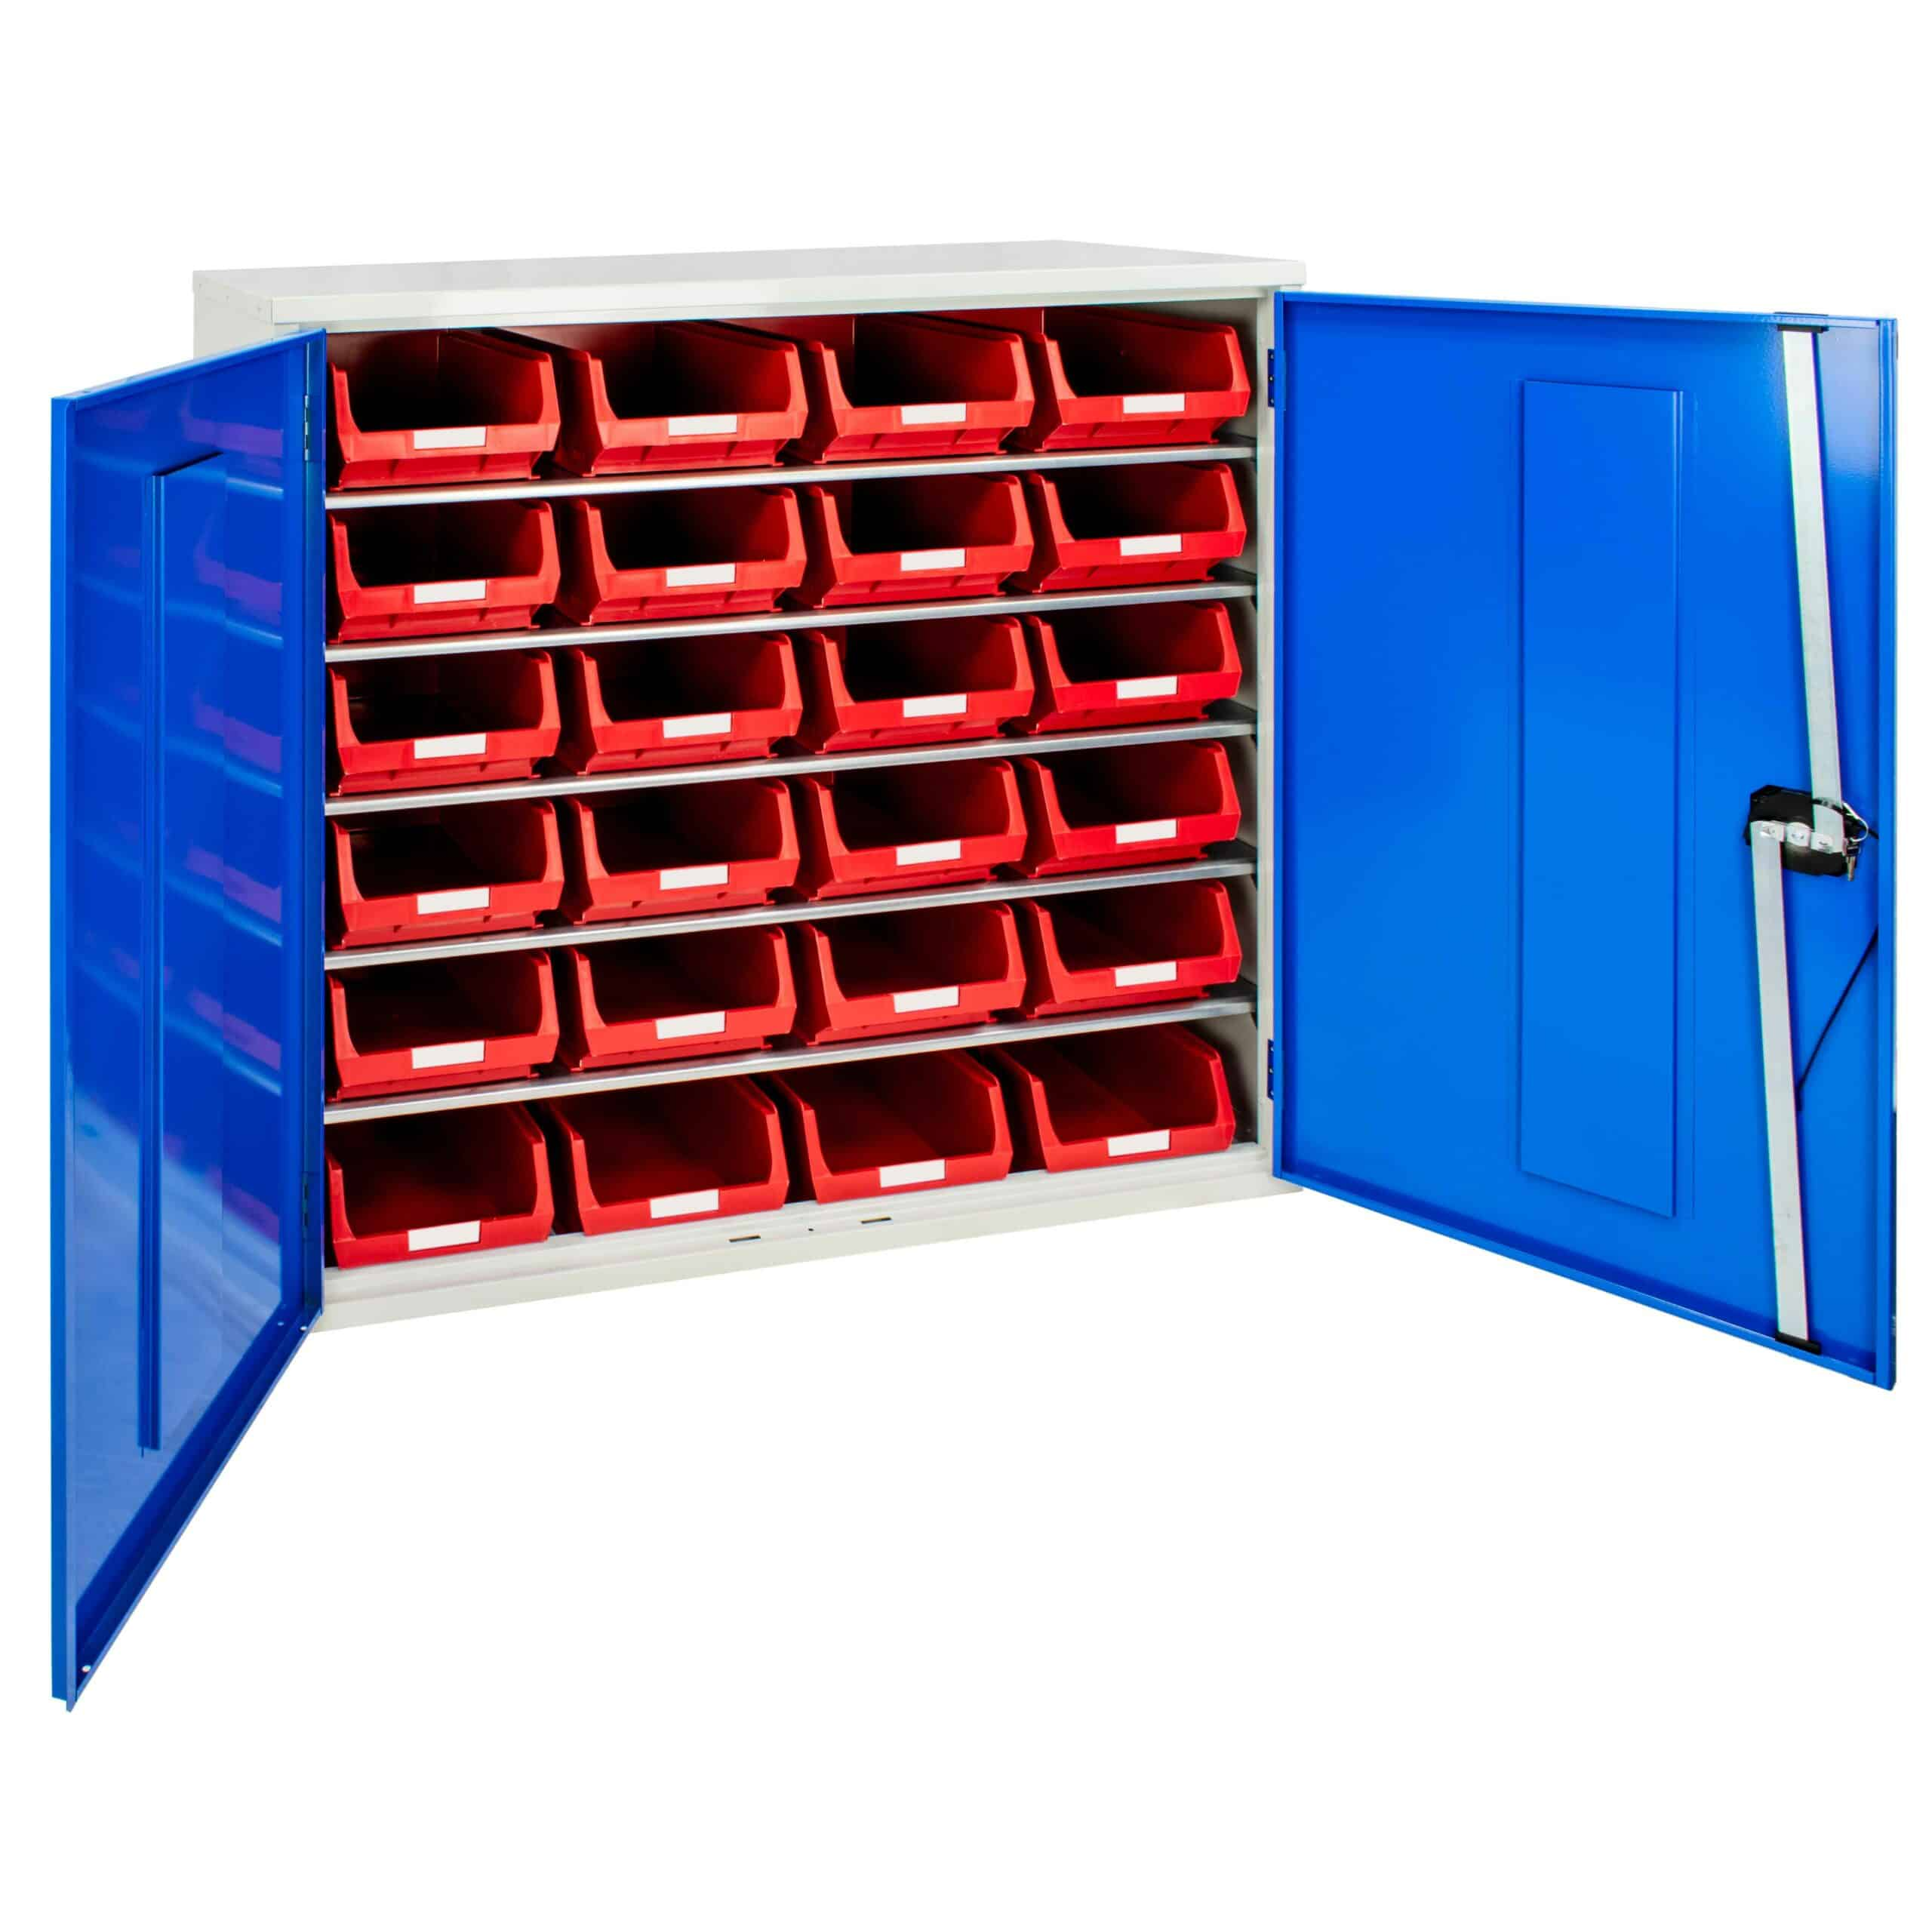 Container Cabinet with 24 TC4 Bins